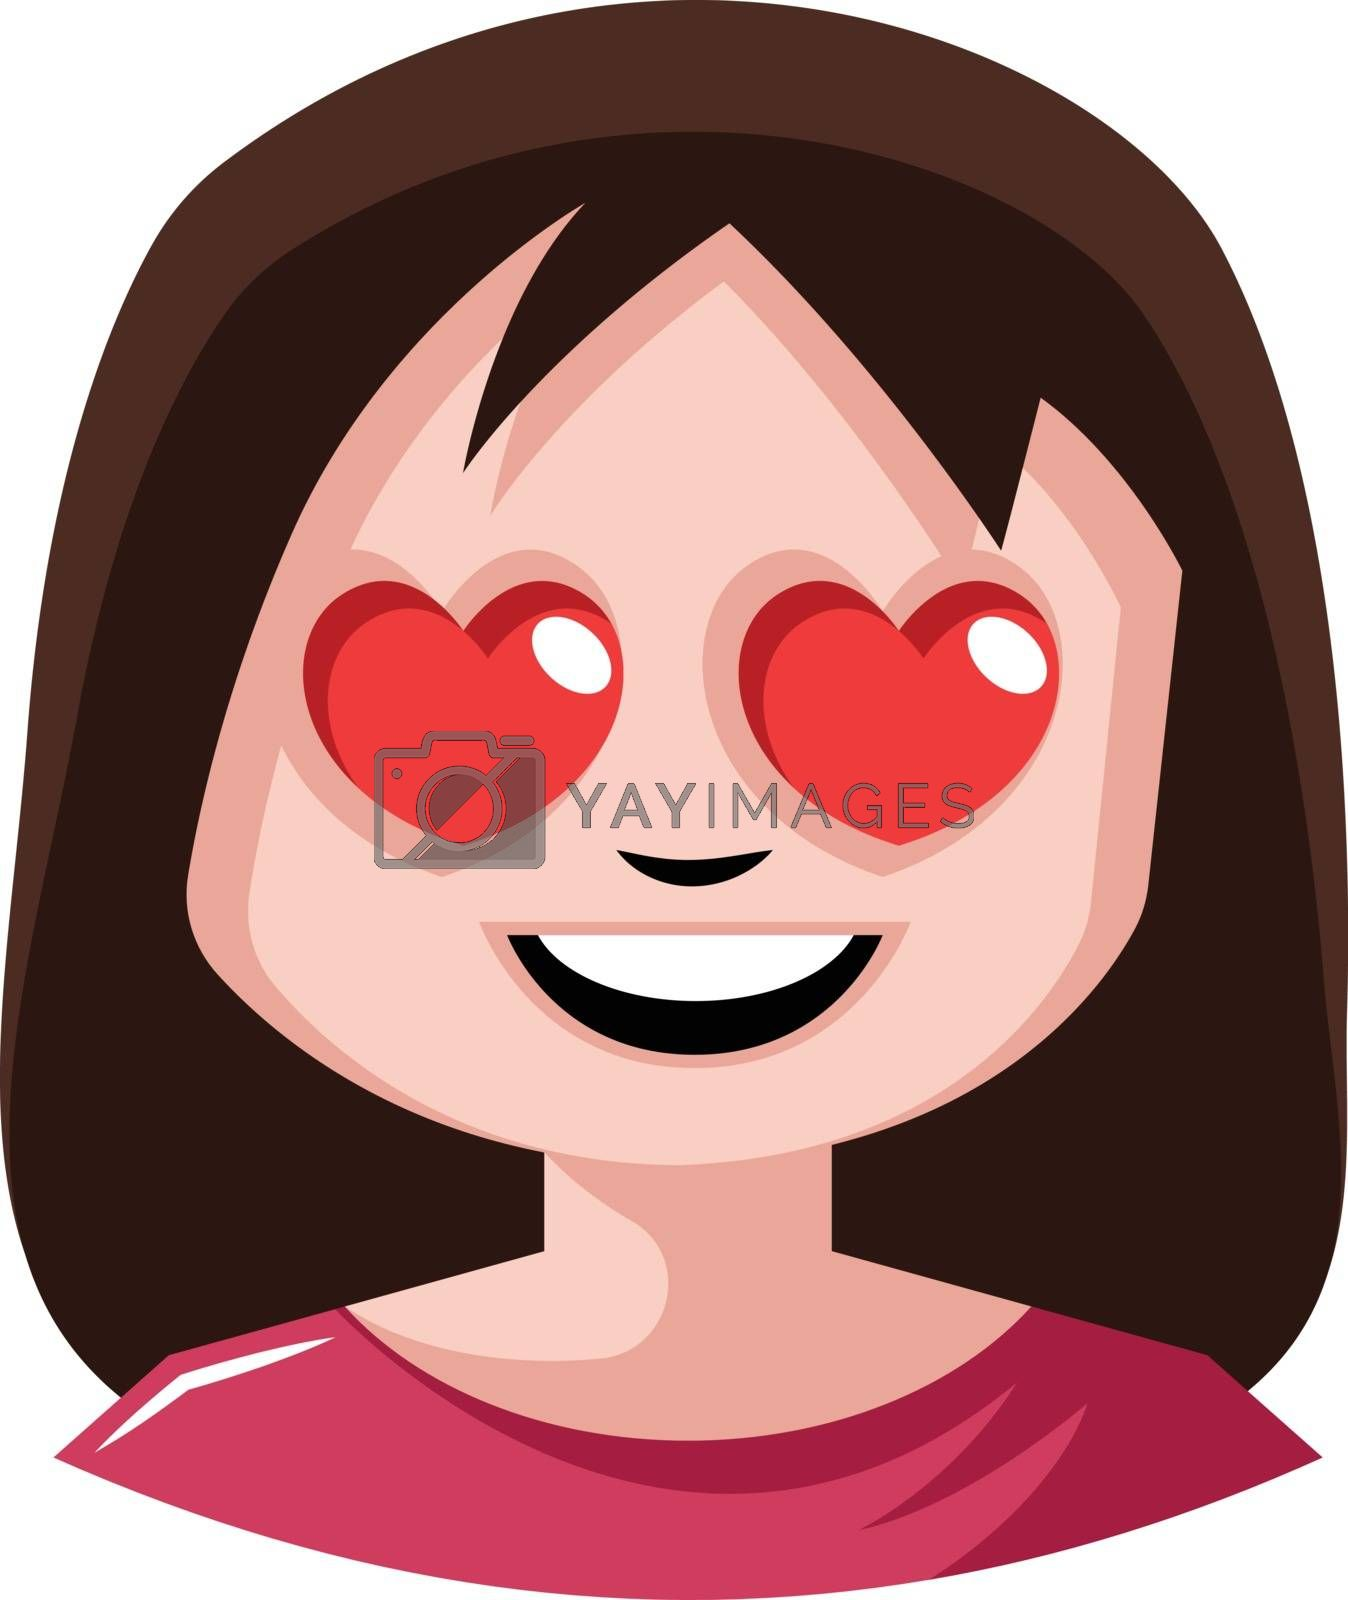 Royalty free image of Girl with heart shaped eyes illustration vector on white backgro by Morphart